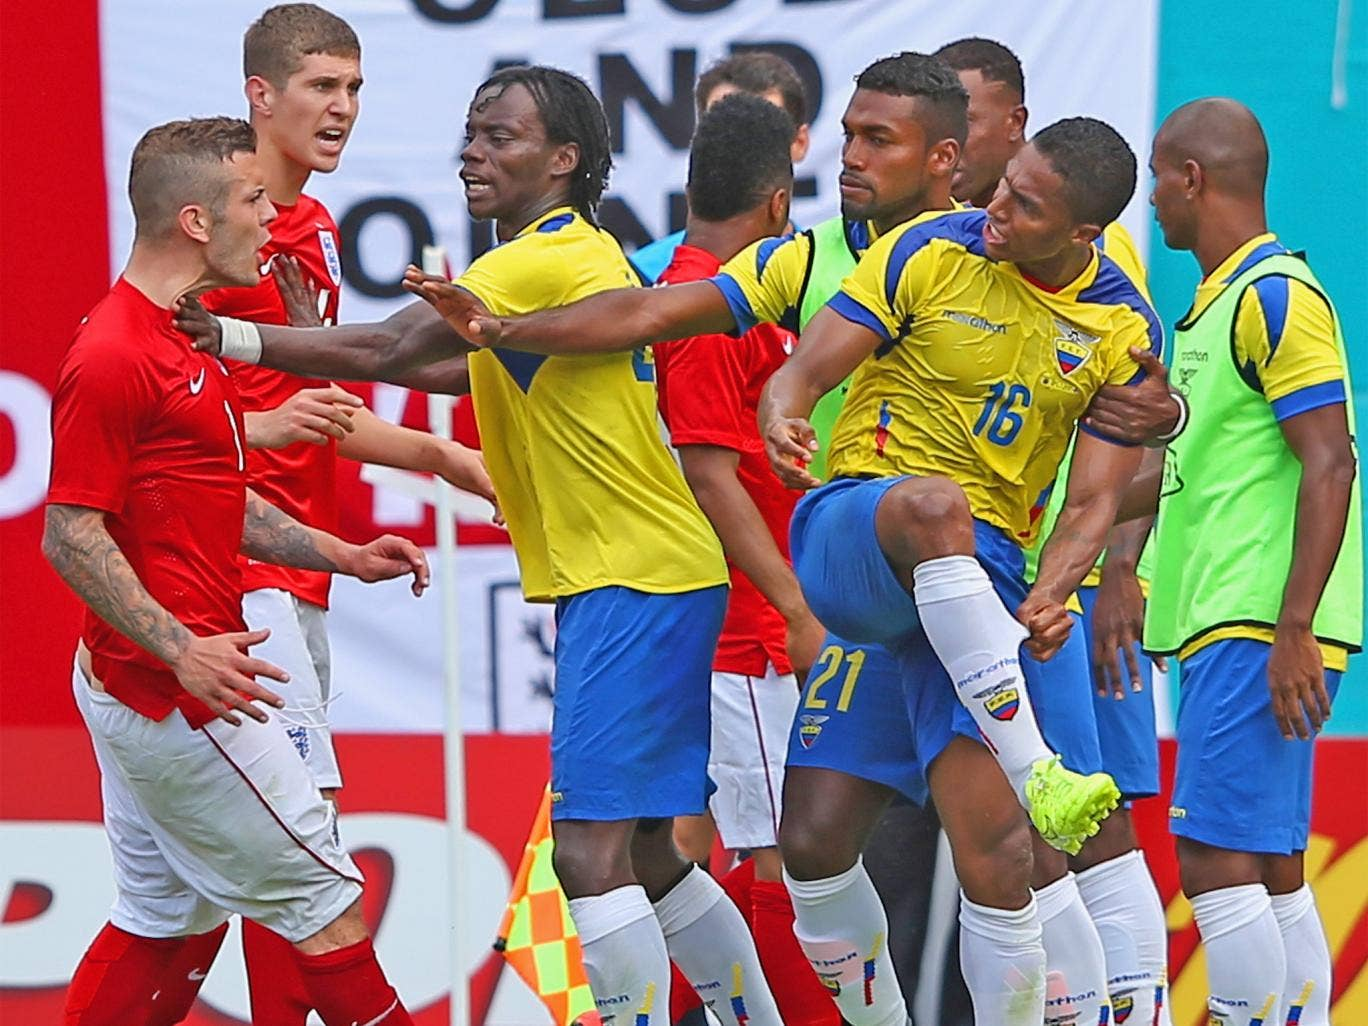 Jack Wilshere confronts Antonio Valencia after his altercation with Raheem Sterling